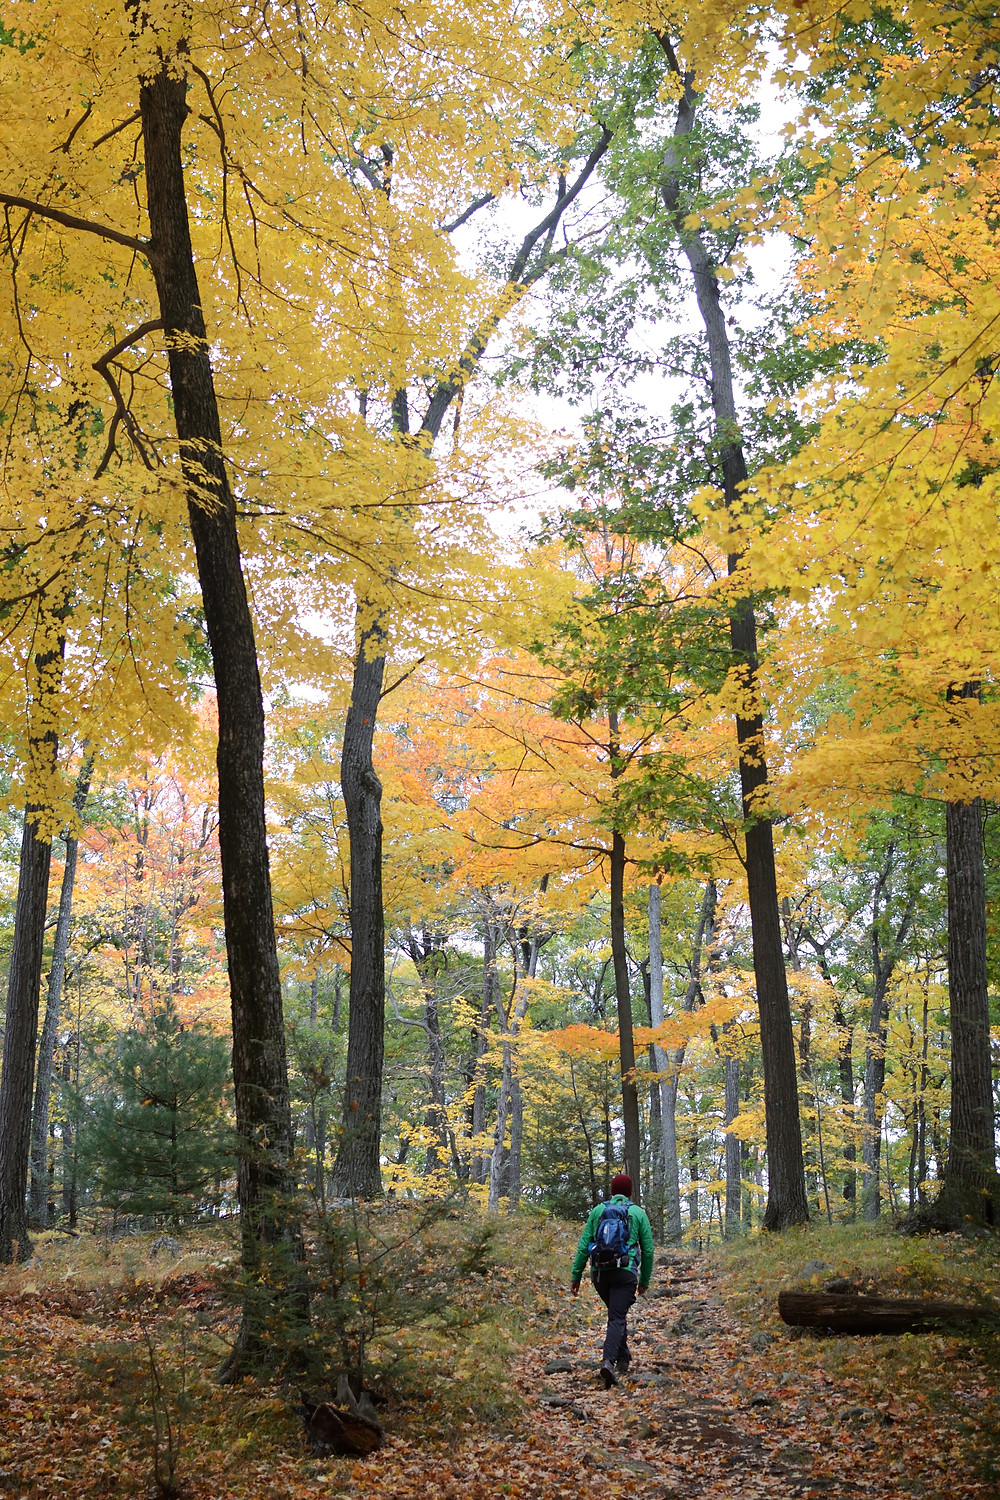 ramapo-dunderberg-trail-harriman-state-park-fall